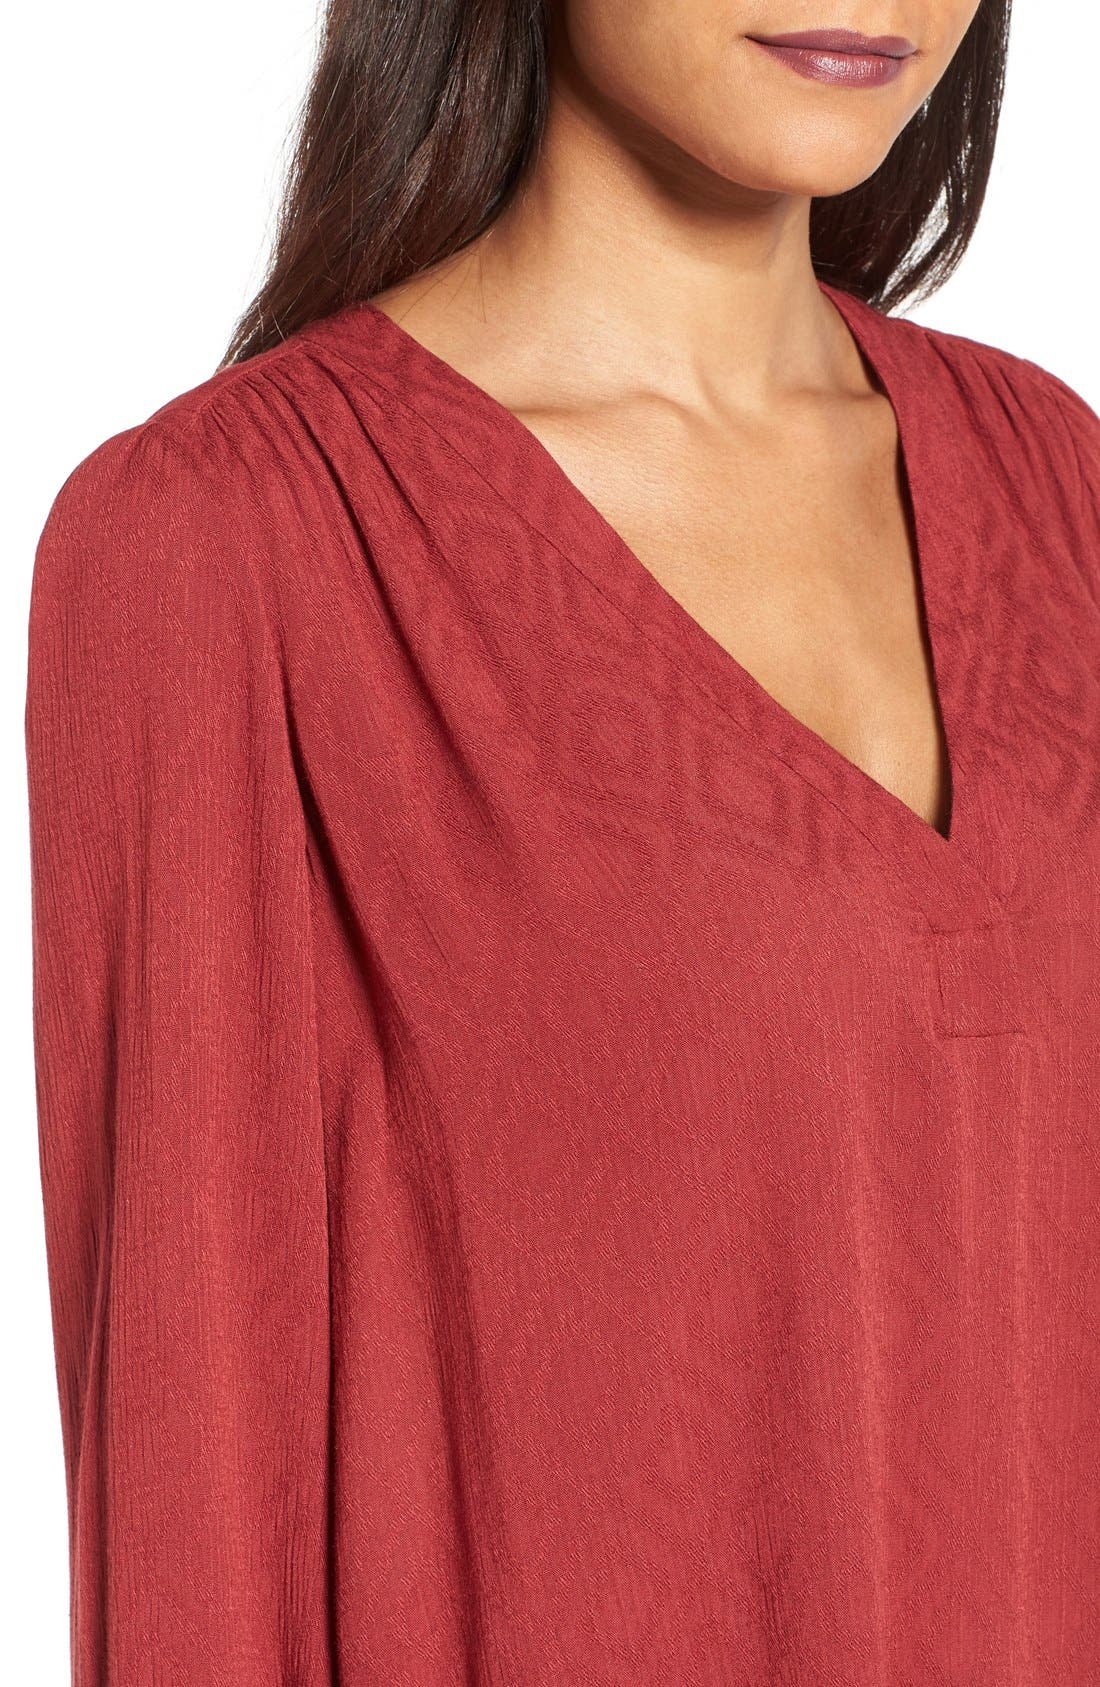 Textured V-Neck Blouse,                             Alternate thumbnail 4, color,                             Brick